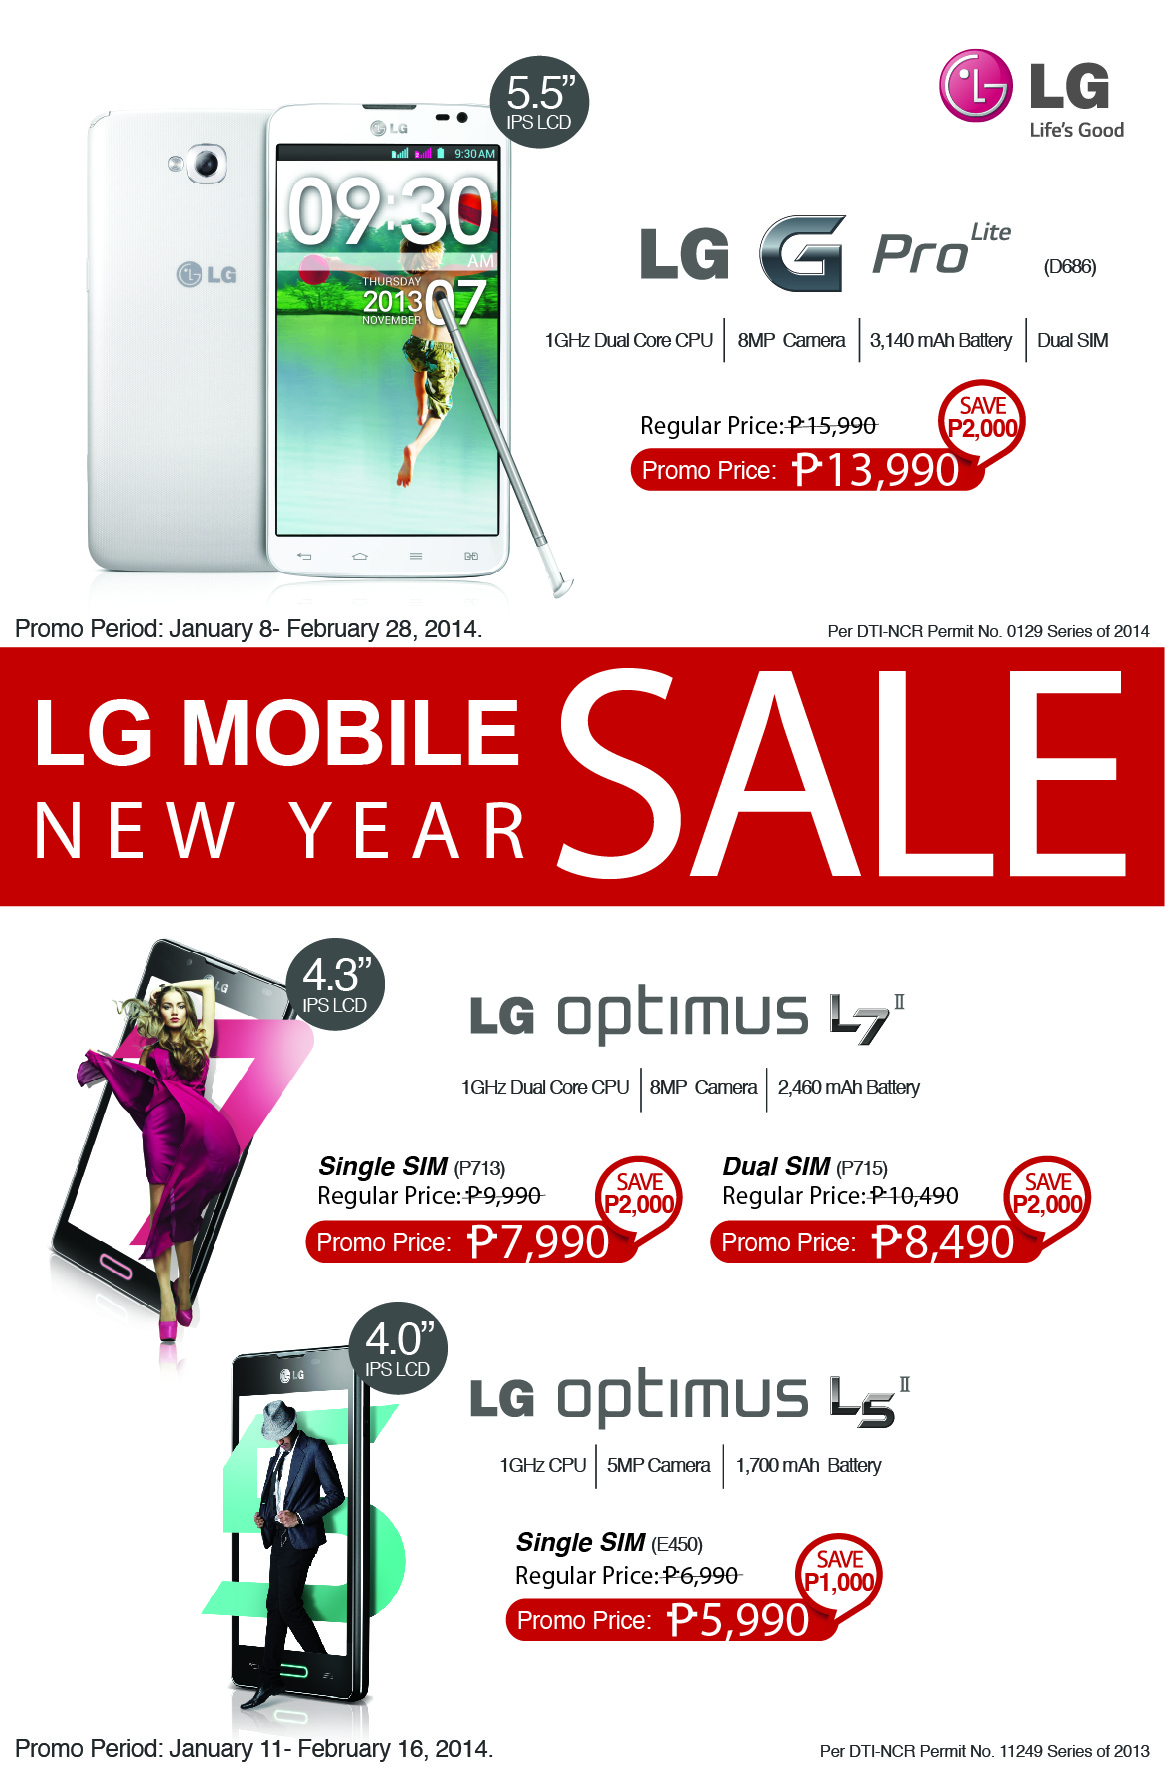 LG Mobile Kicks Off 2014 with New Year Promo